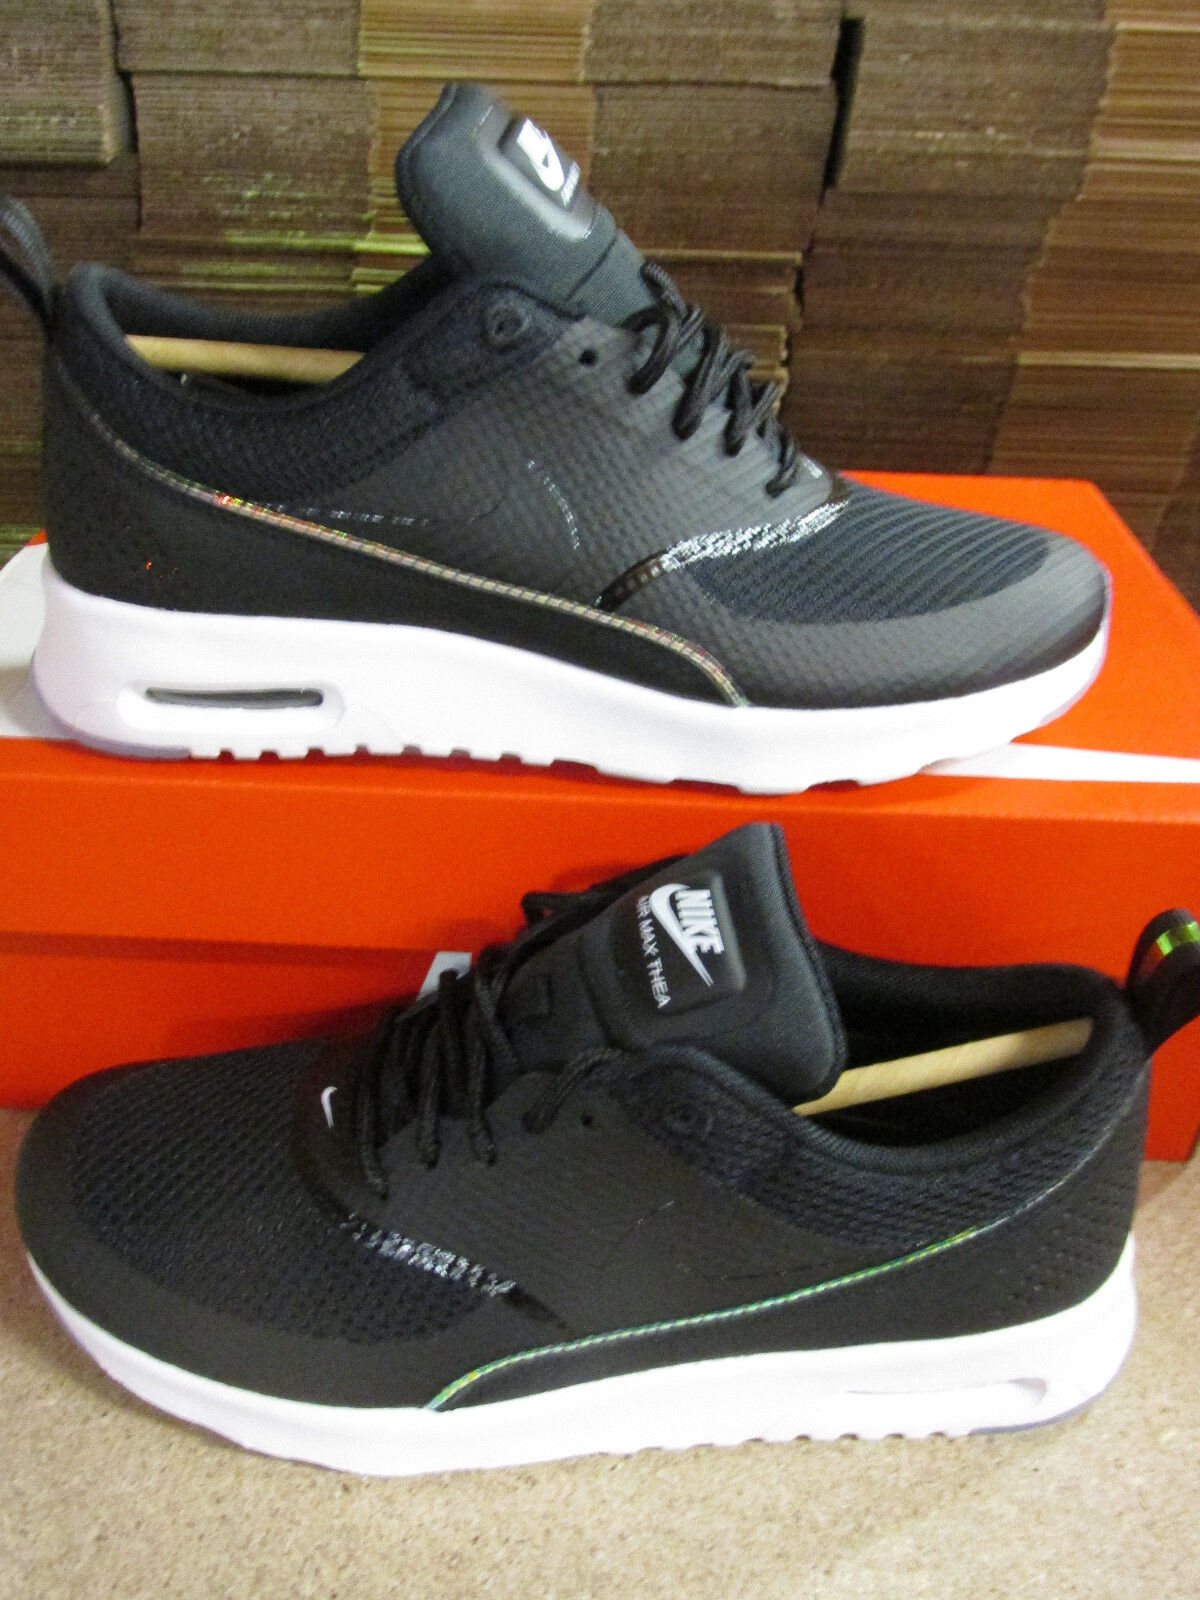 nike air max thea PRM Femme running trainers 616723 014 sneakers chaussures